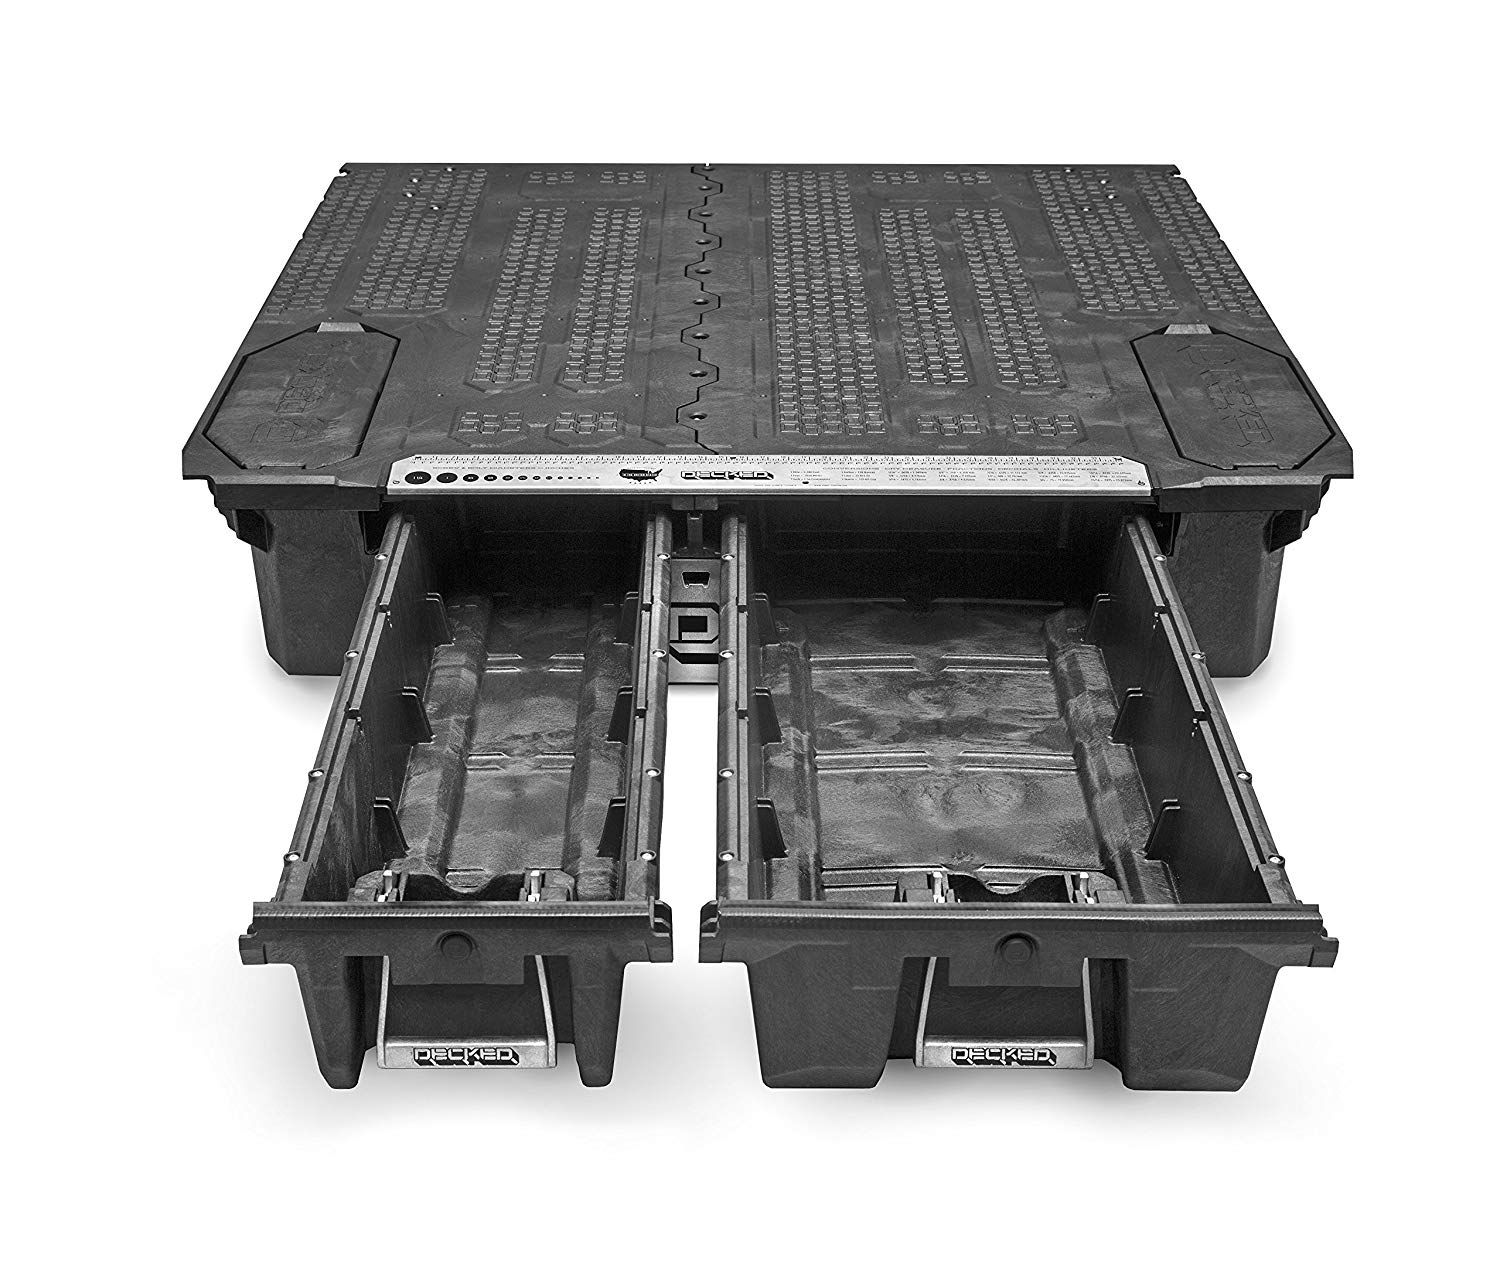 The DECKED invehicle storage system offers secure